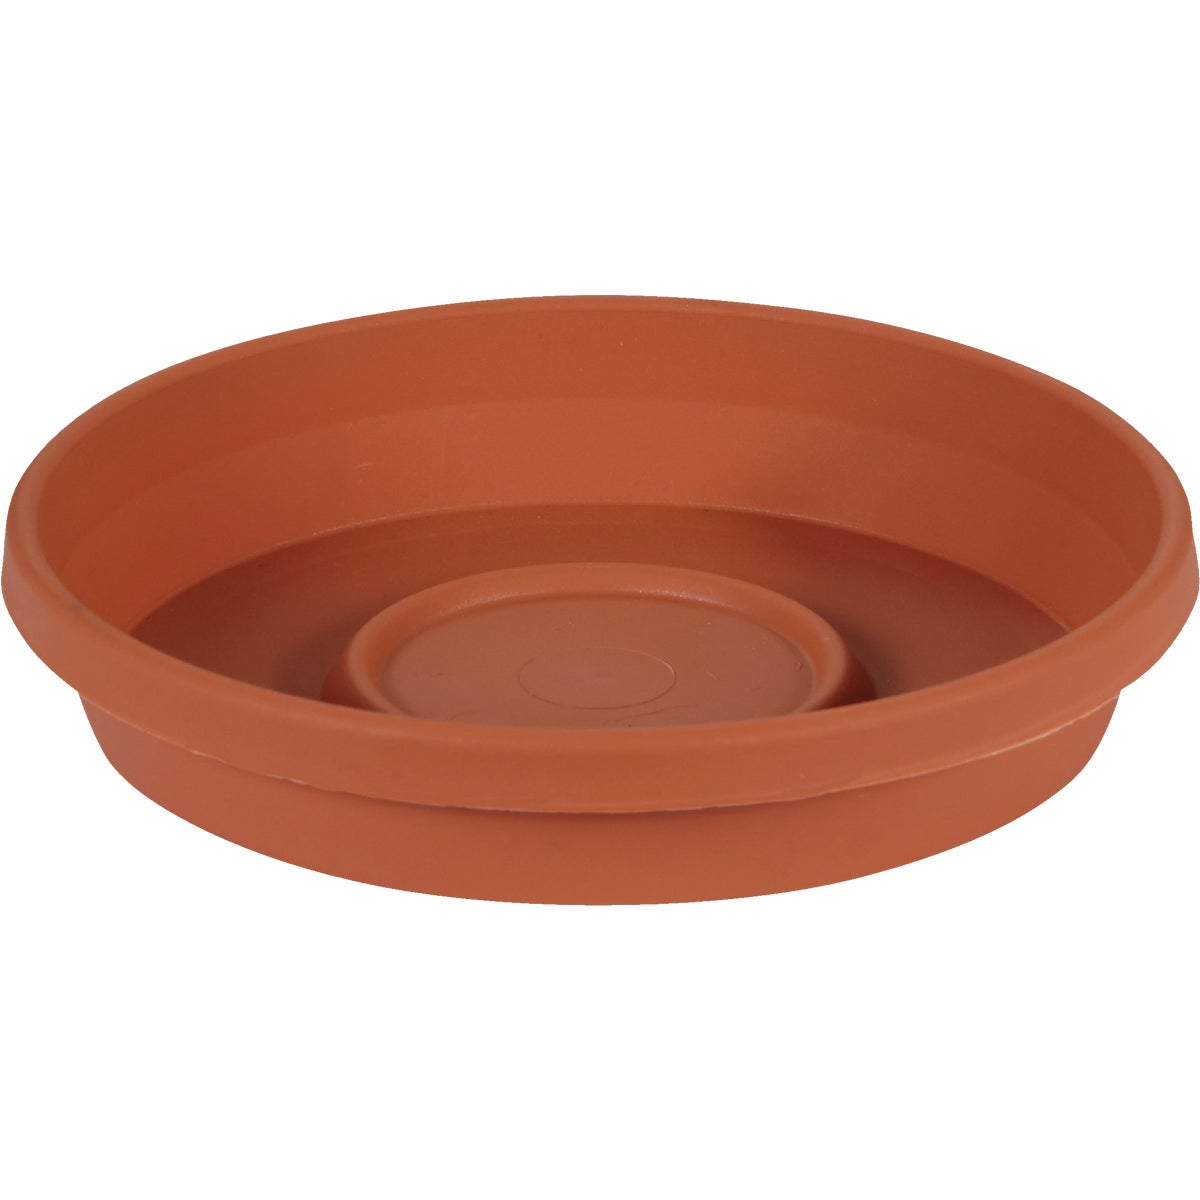 "16"" CLAY POLY SAUCER - 51016C by Fiskars Brands Inc"